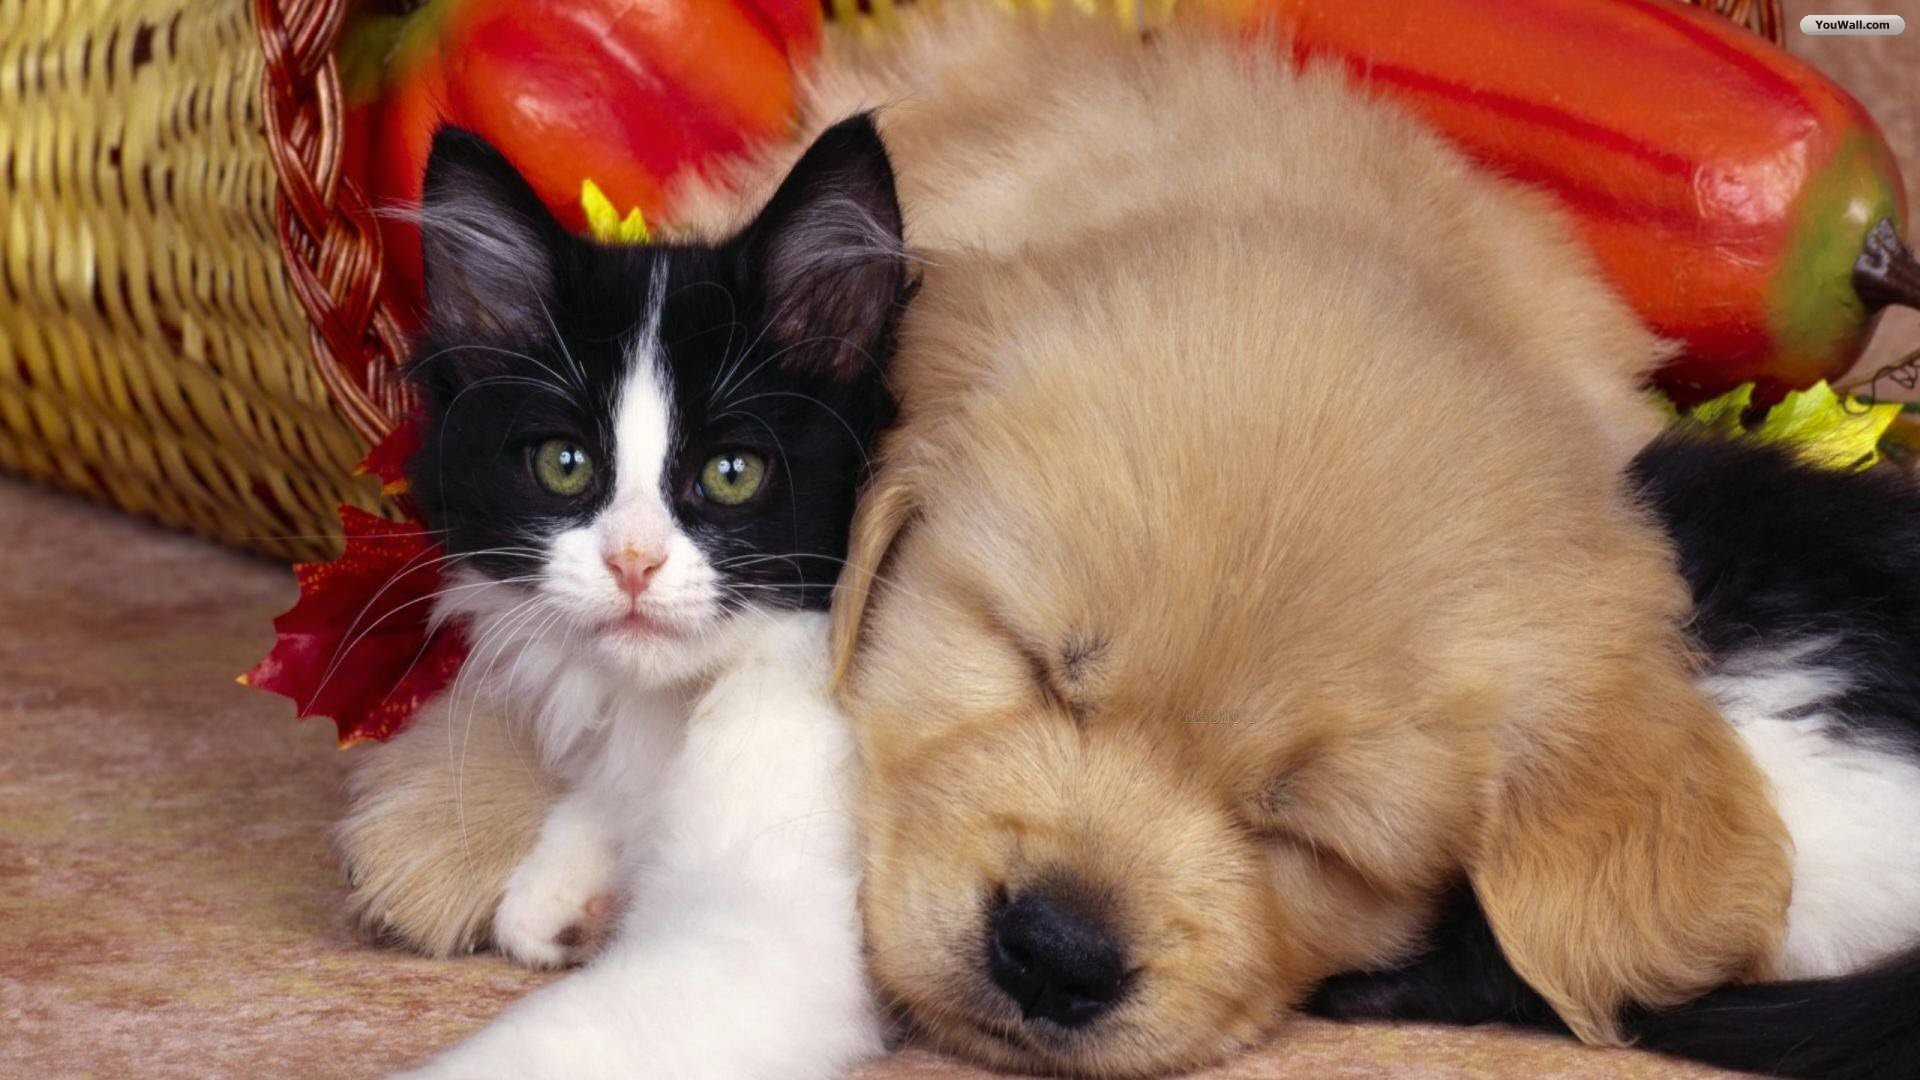 Cute Cats & Dogs Wallpapers Images Free Download For Desktop